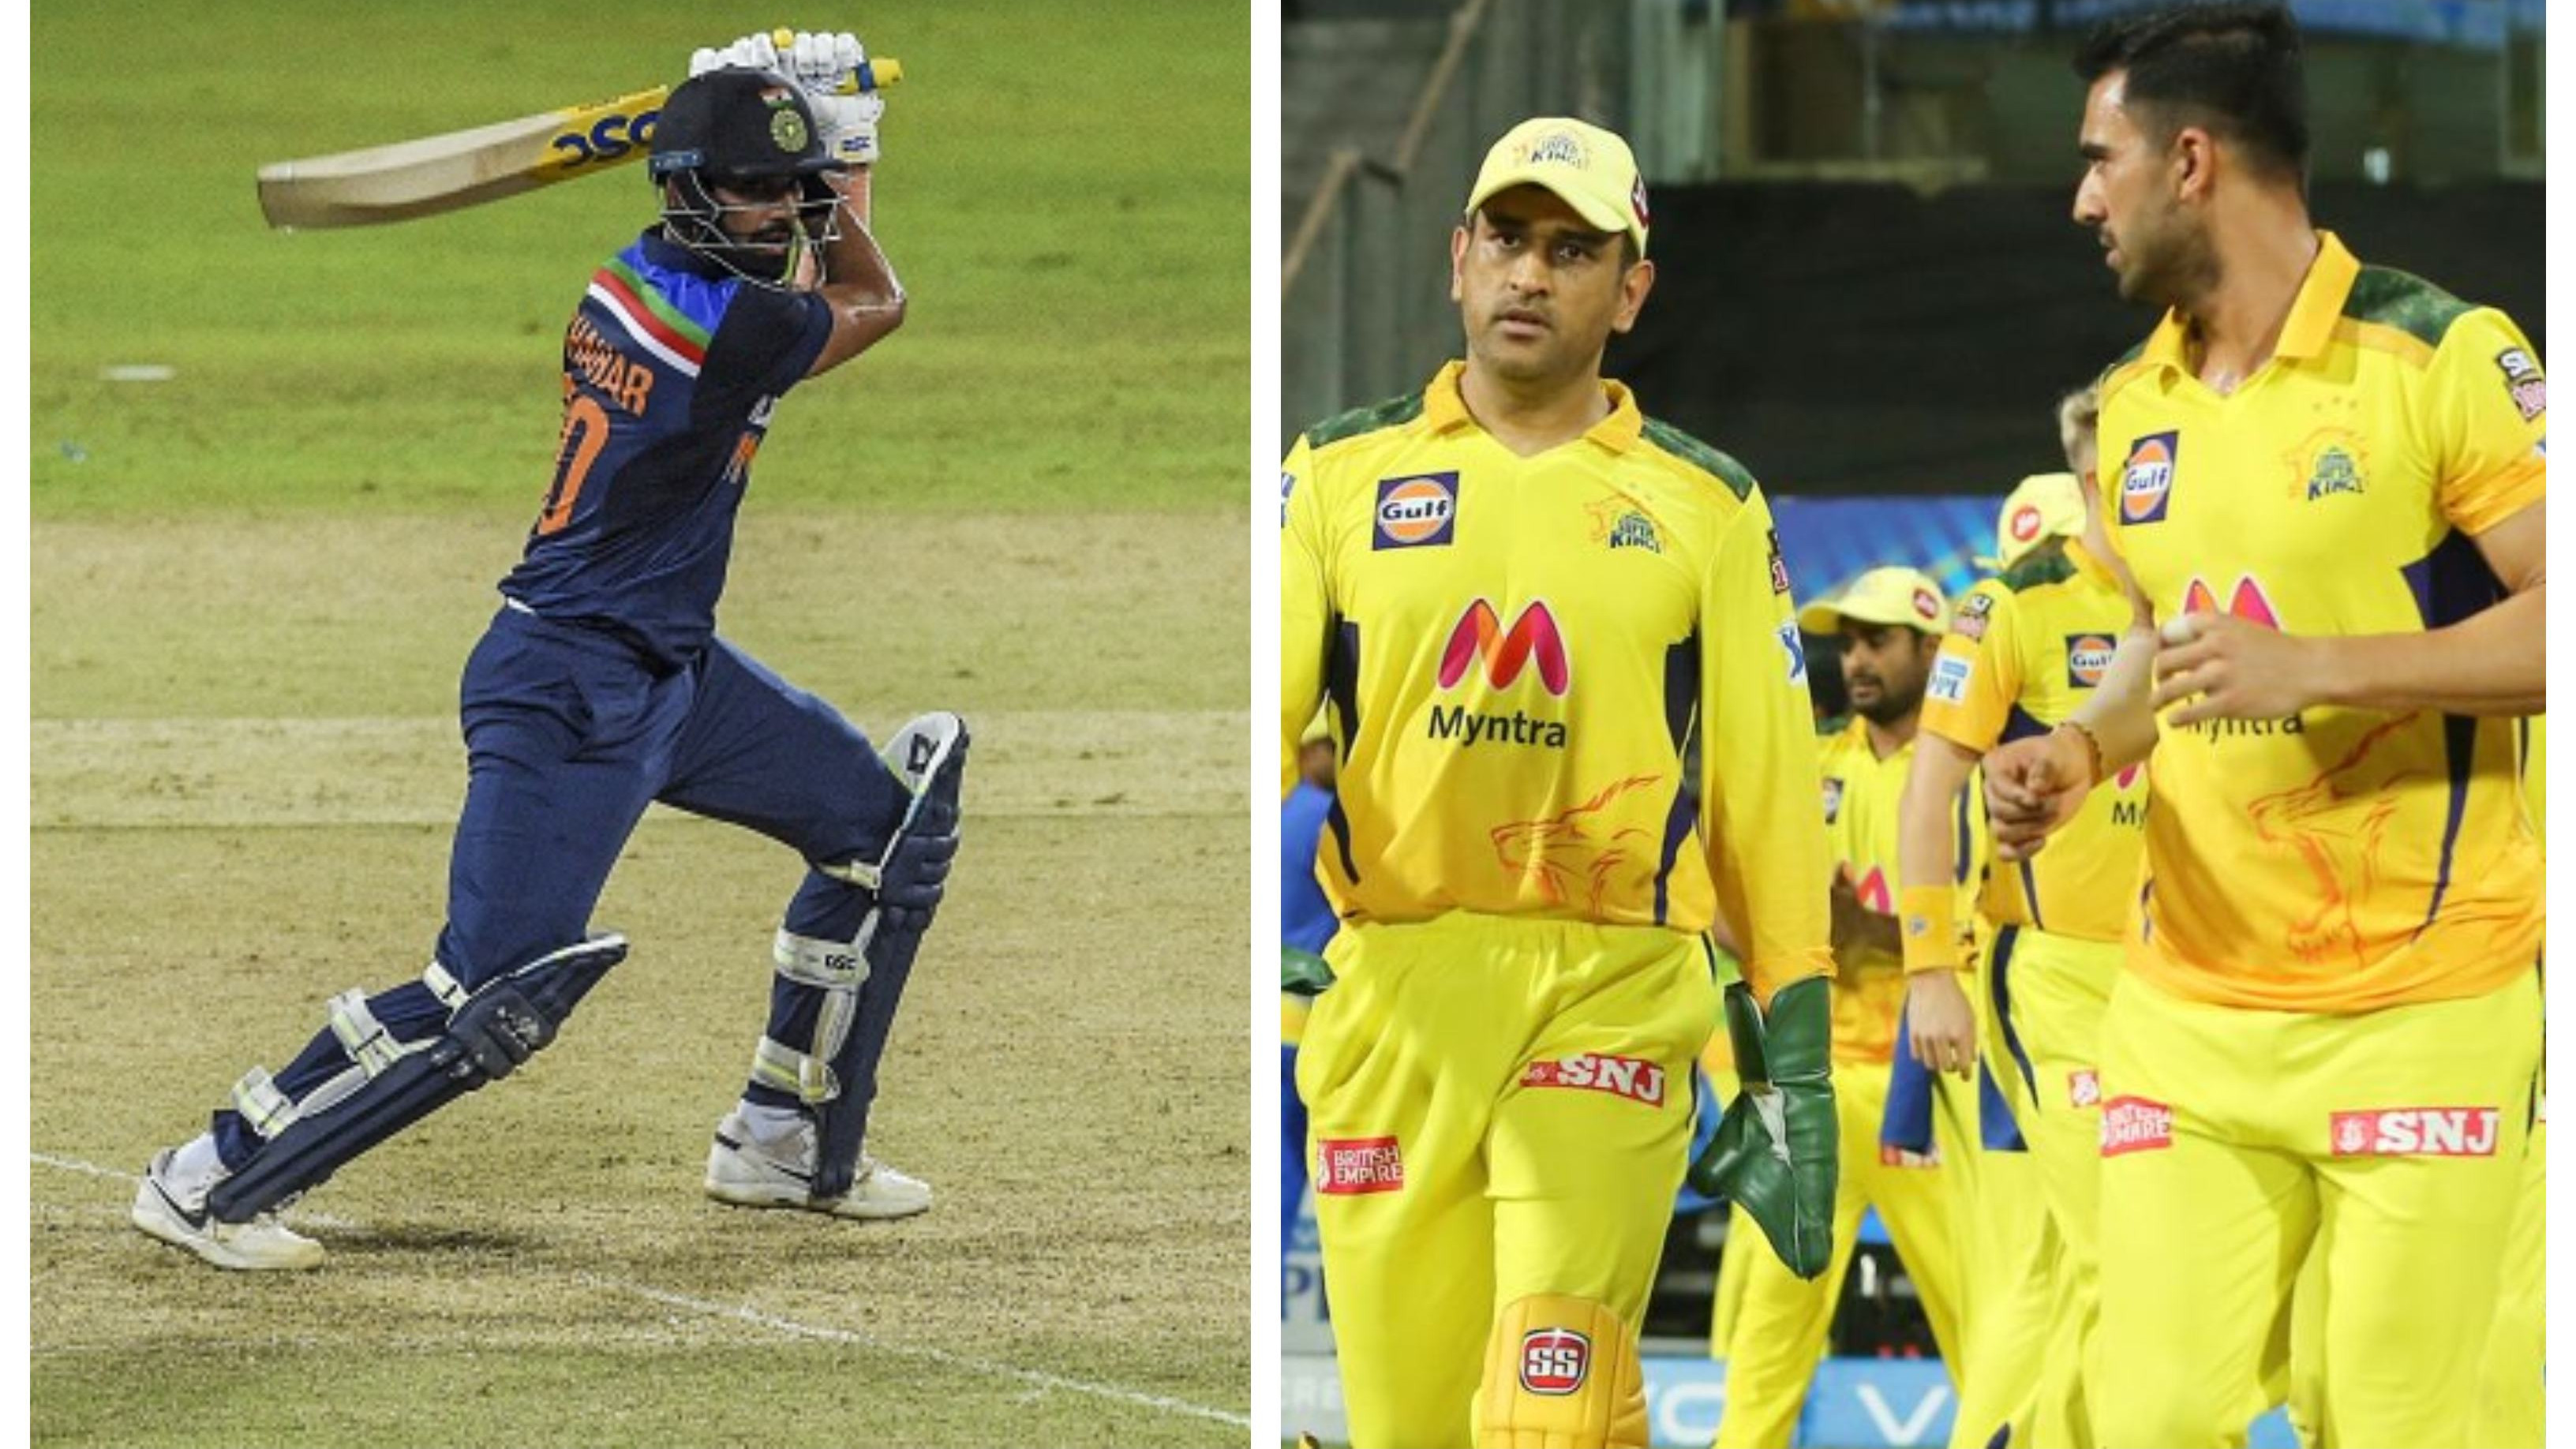 WATCH: Deepak Chahar reveals receiving message from MS Dhoni after his match-winning knock in Sri Lanka